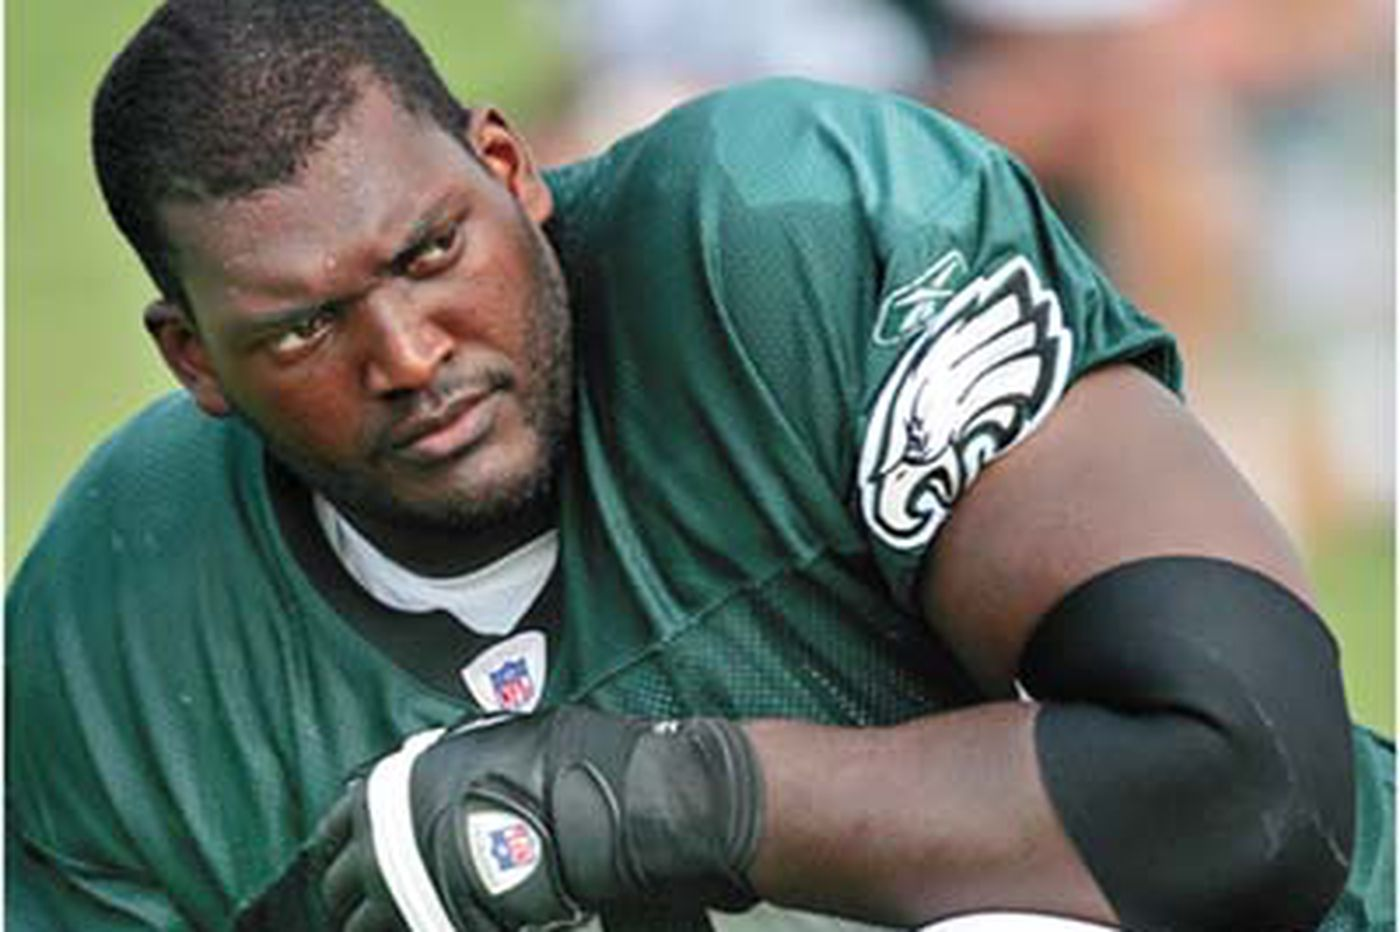 Eagles - Offensive tackle Justice has something to prove for Eagles